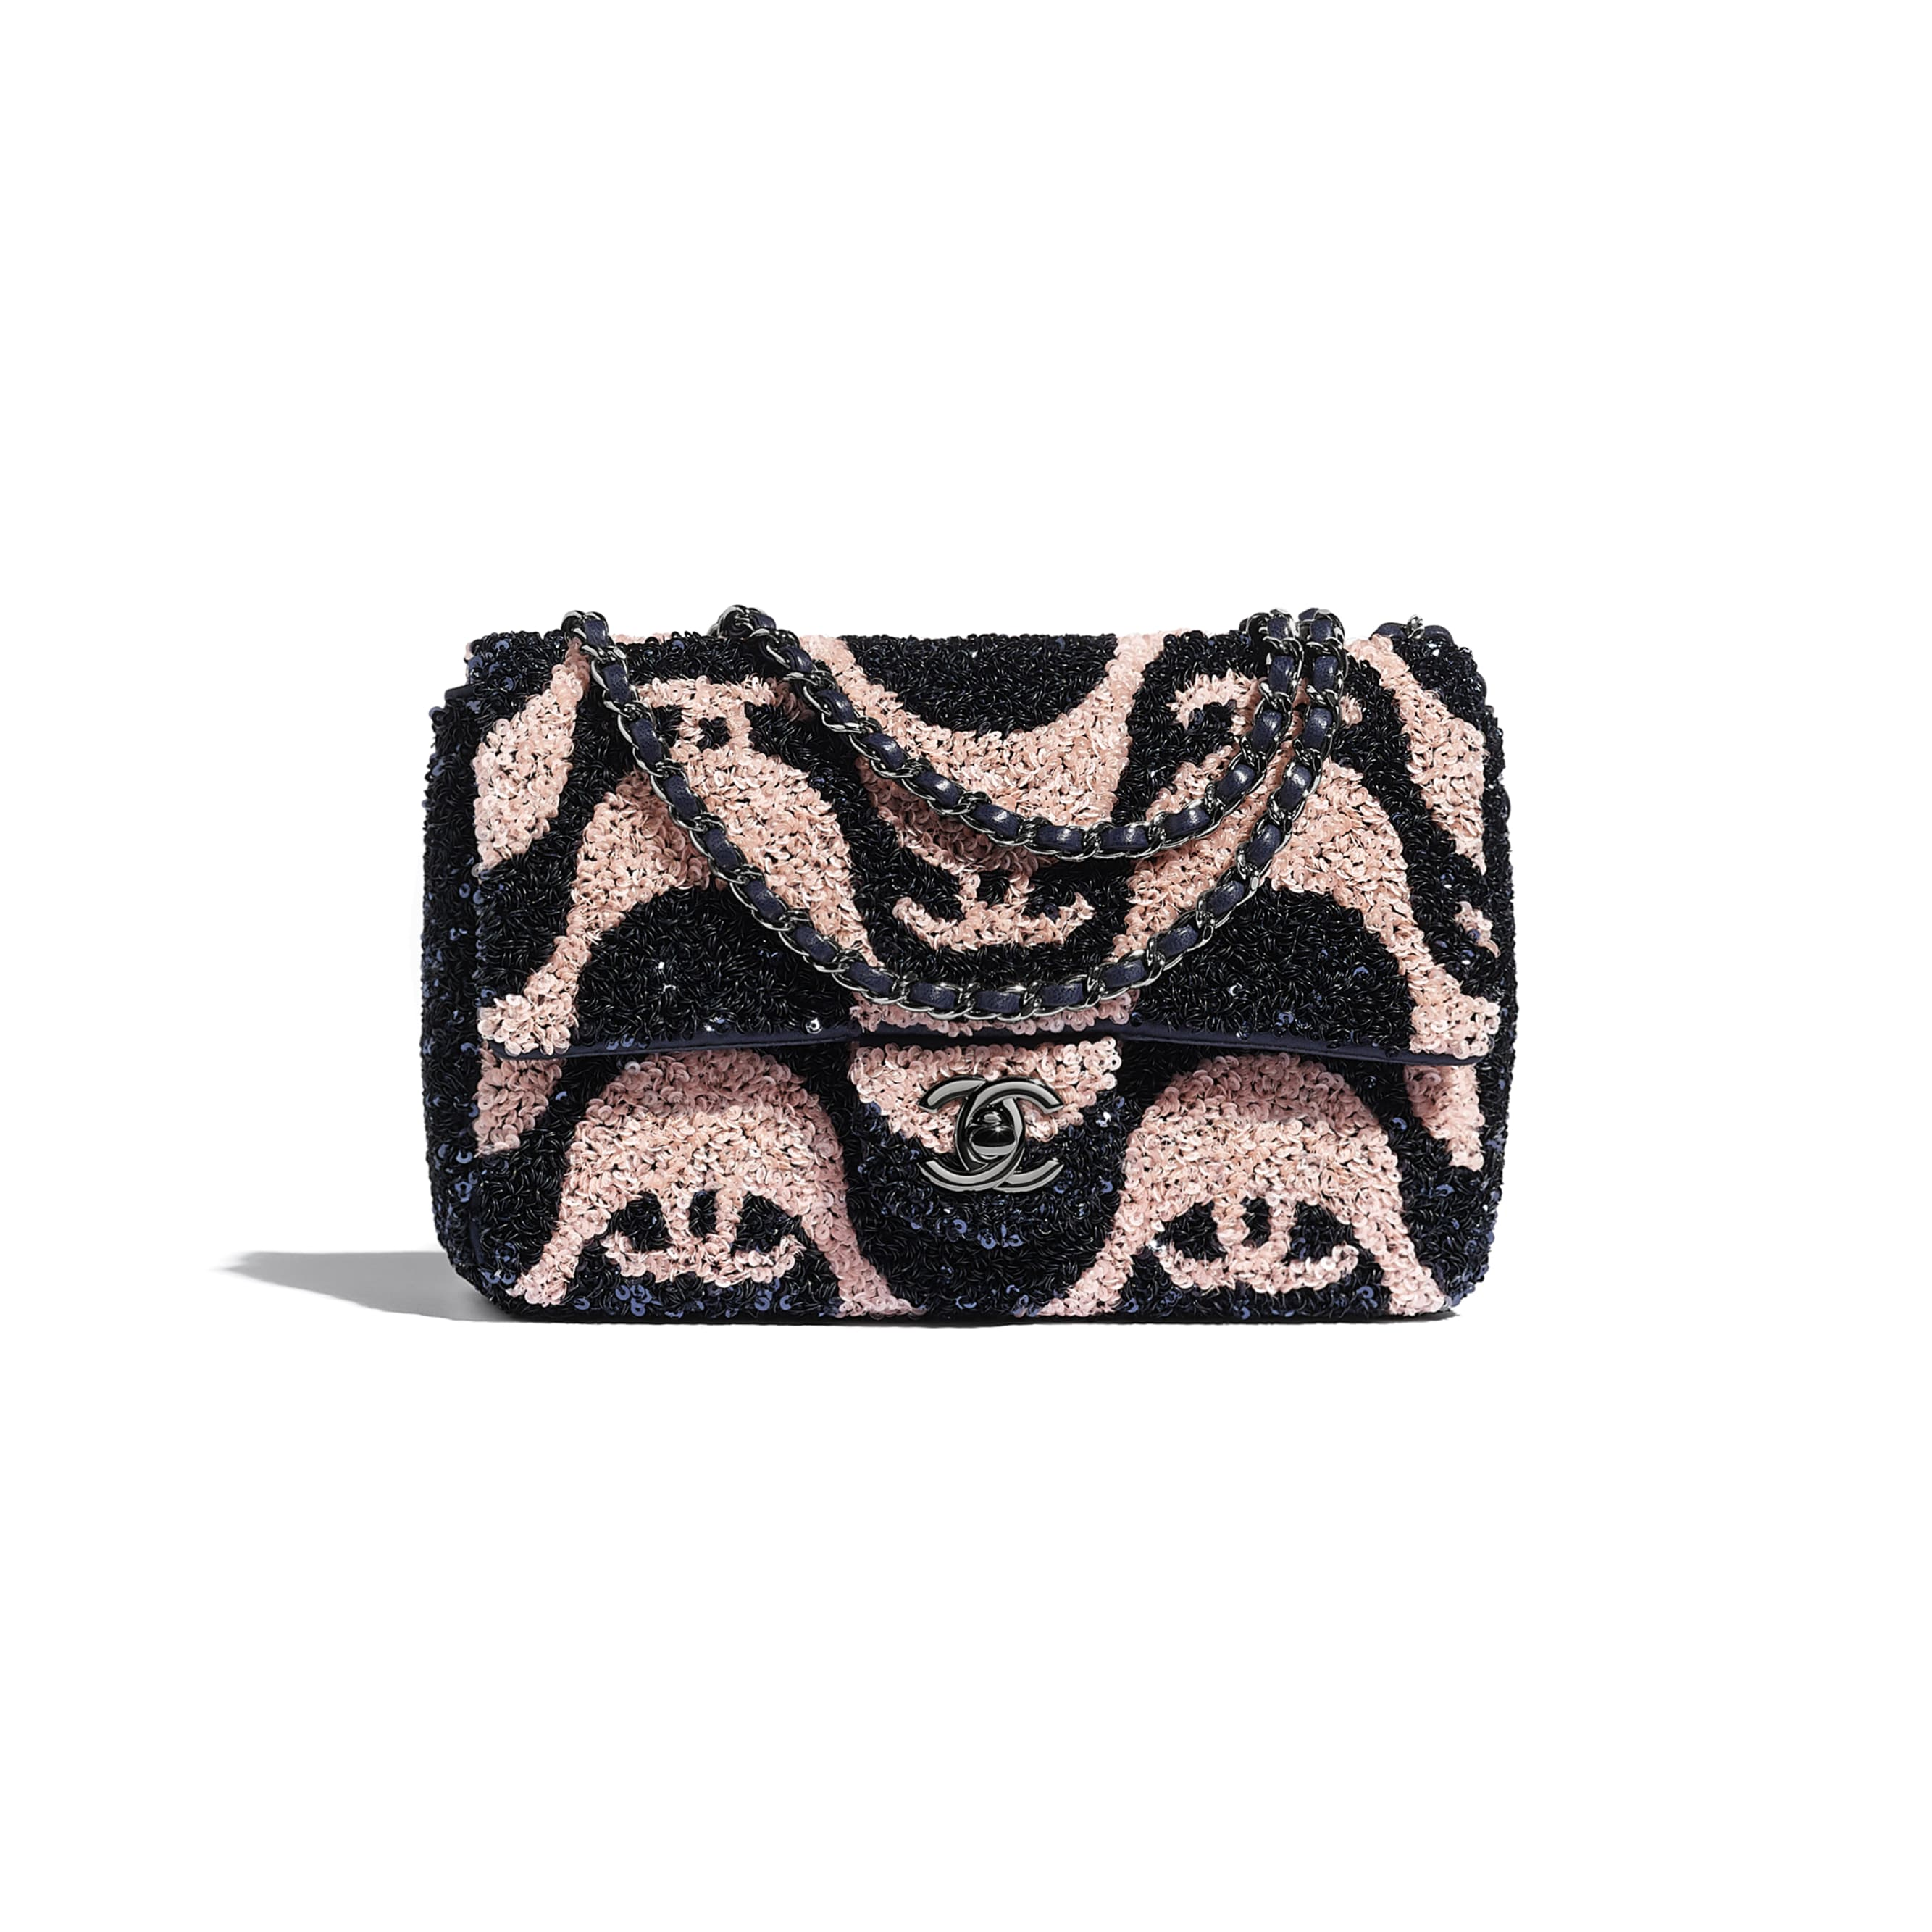 Small Flap Bag - Navy Blue & Pink - Sequins & Ruthenium-Finish Metal - CHANEL - Default view - see standard sized version